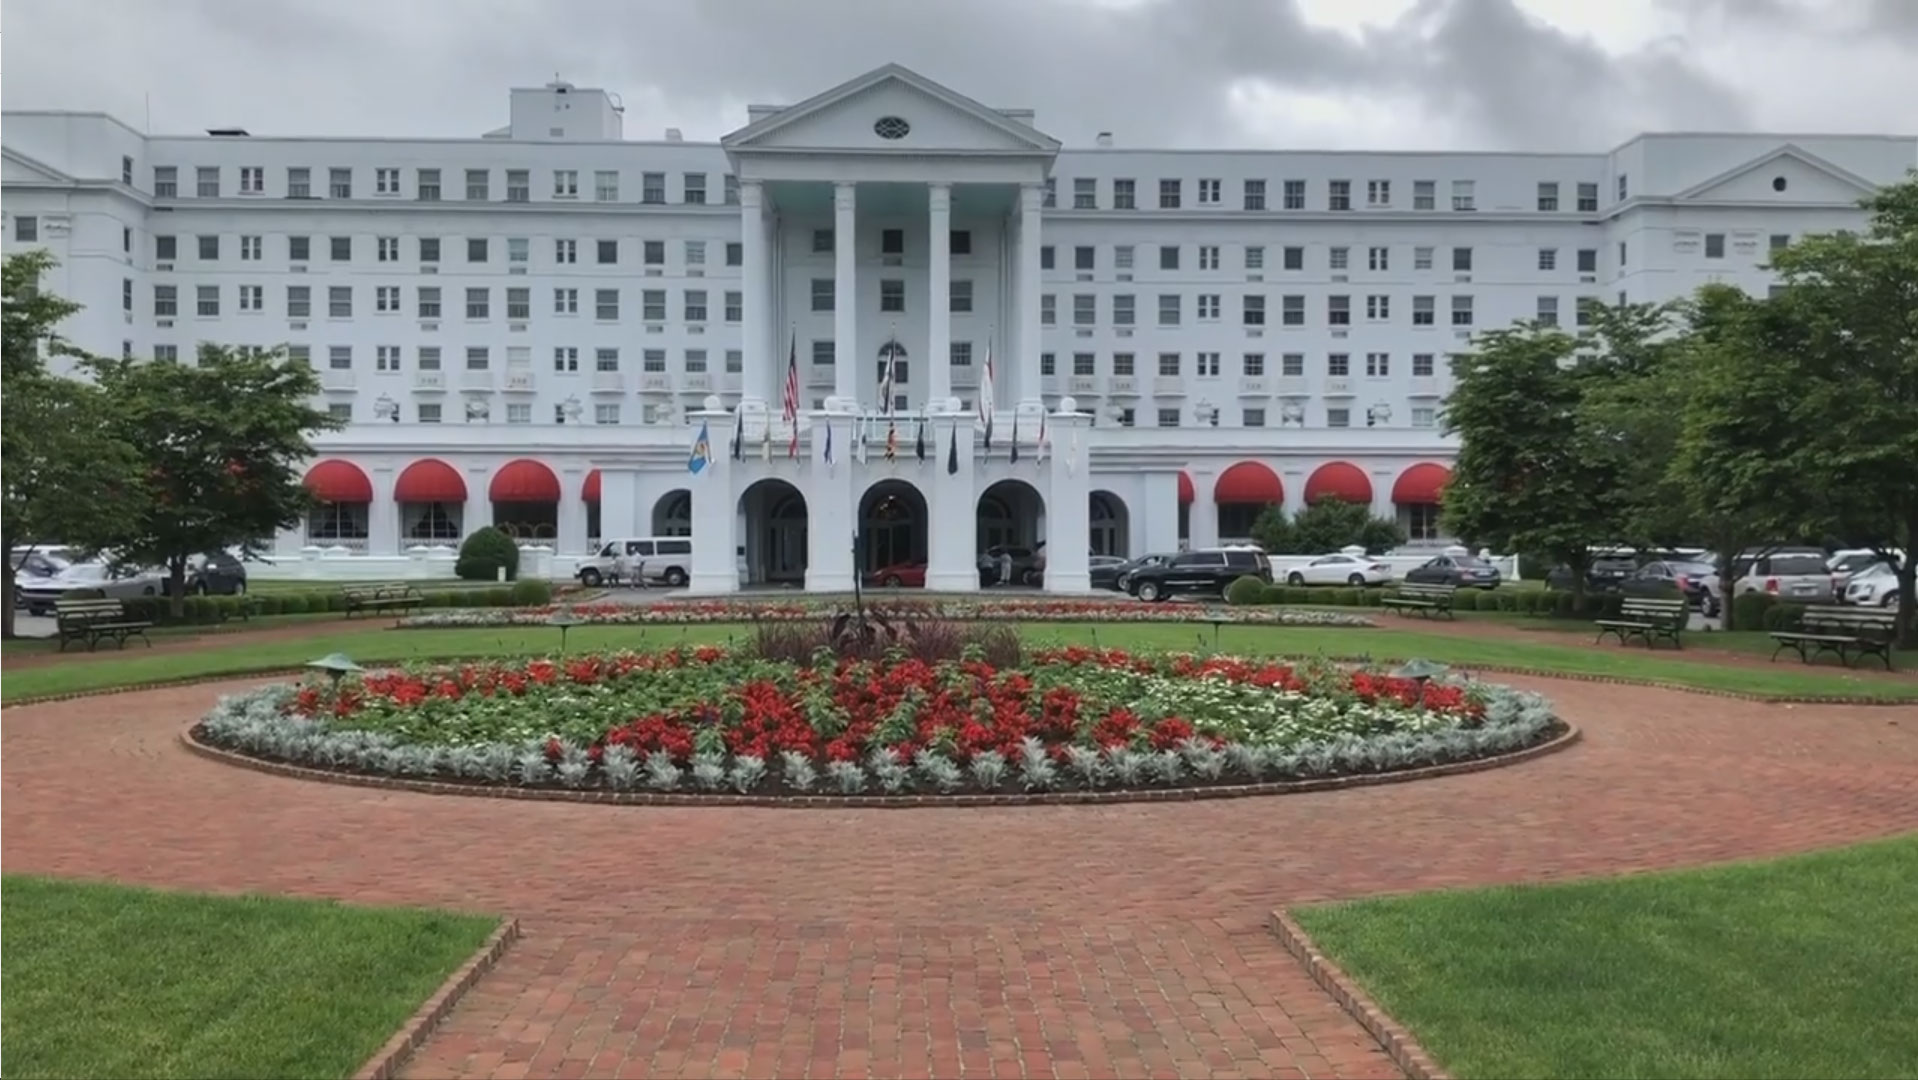 A Perfect Weekend Getaway At The Greenbrier, An 11,000